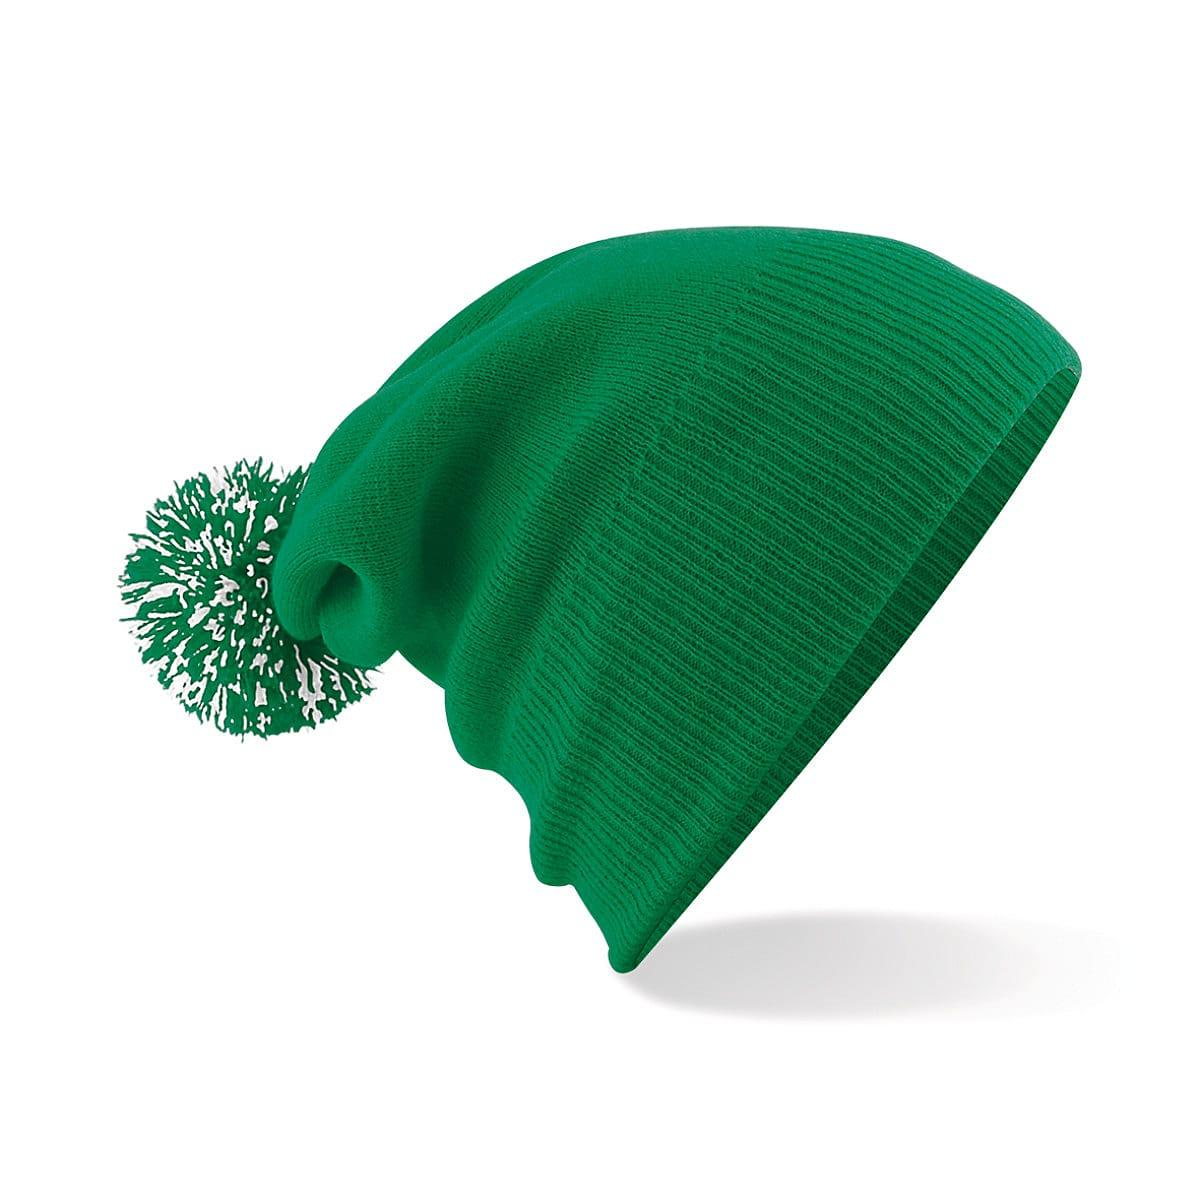 Beechfield Snowstar Beanie Hat in Kelly Green / White (Product Code: B450)